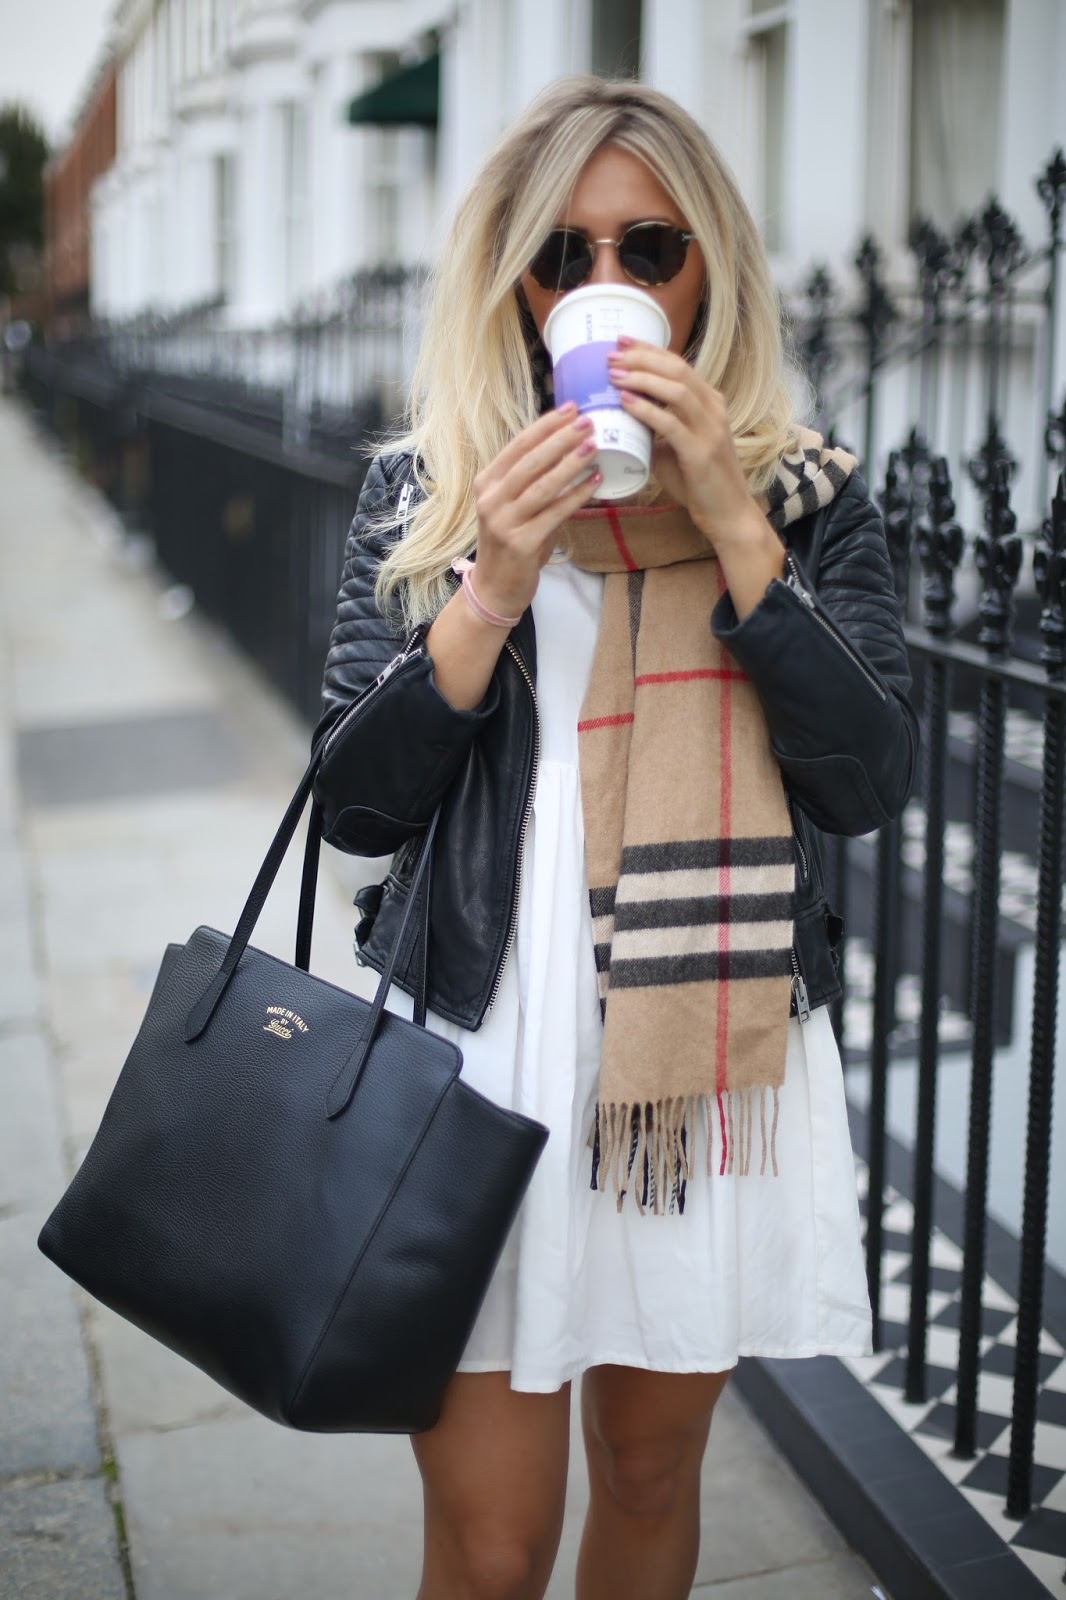 styling a burberry check scarf